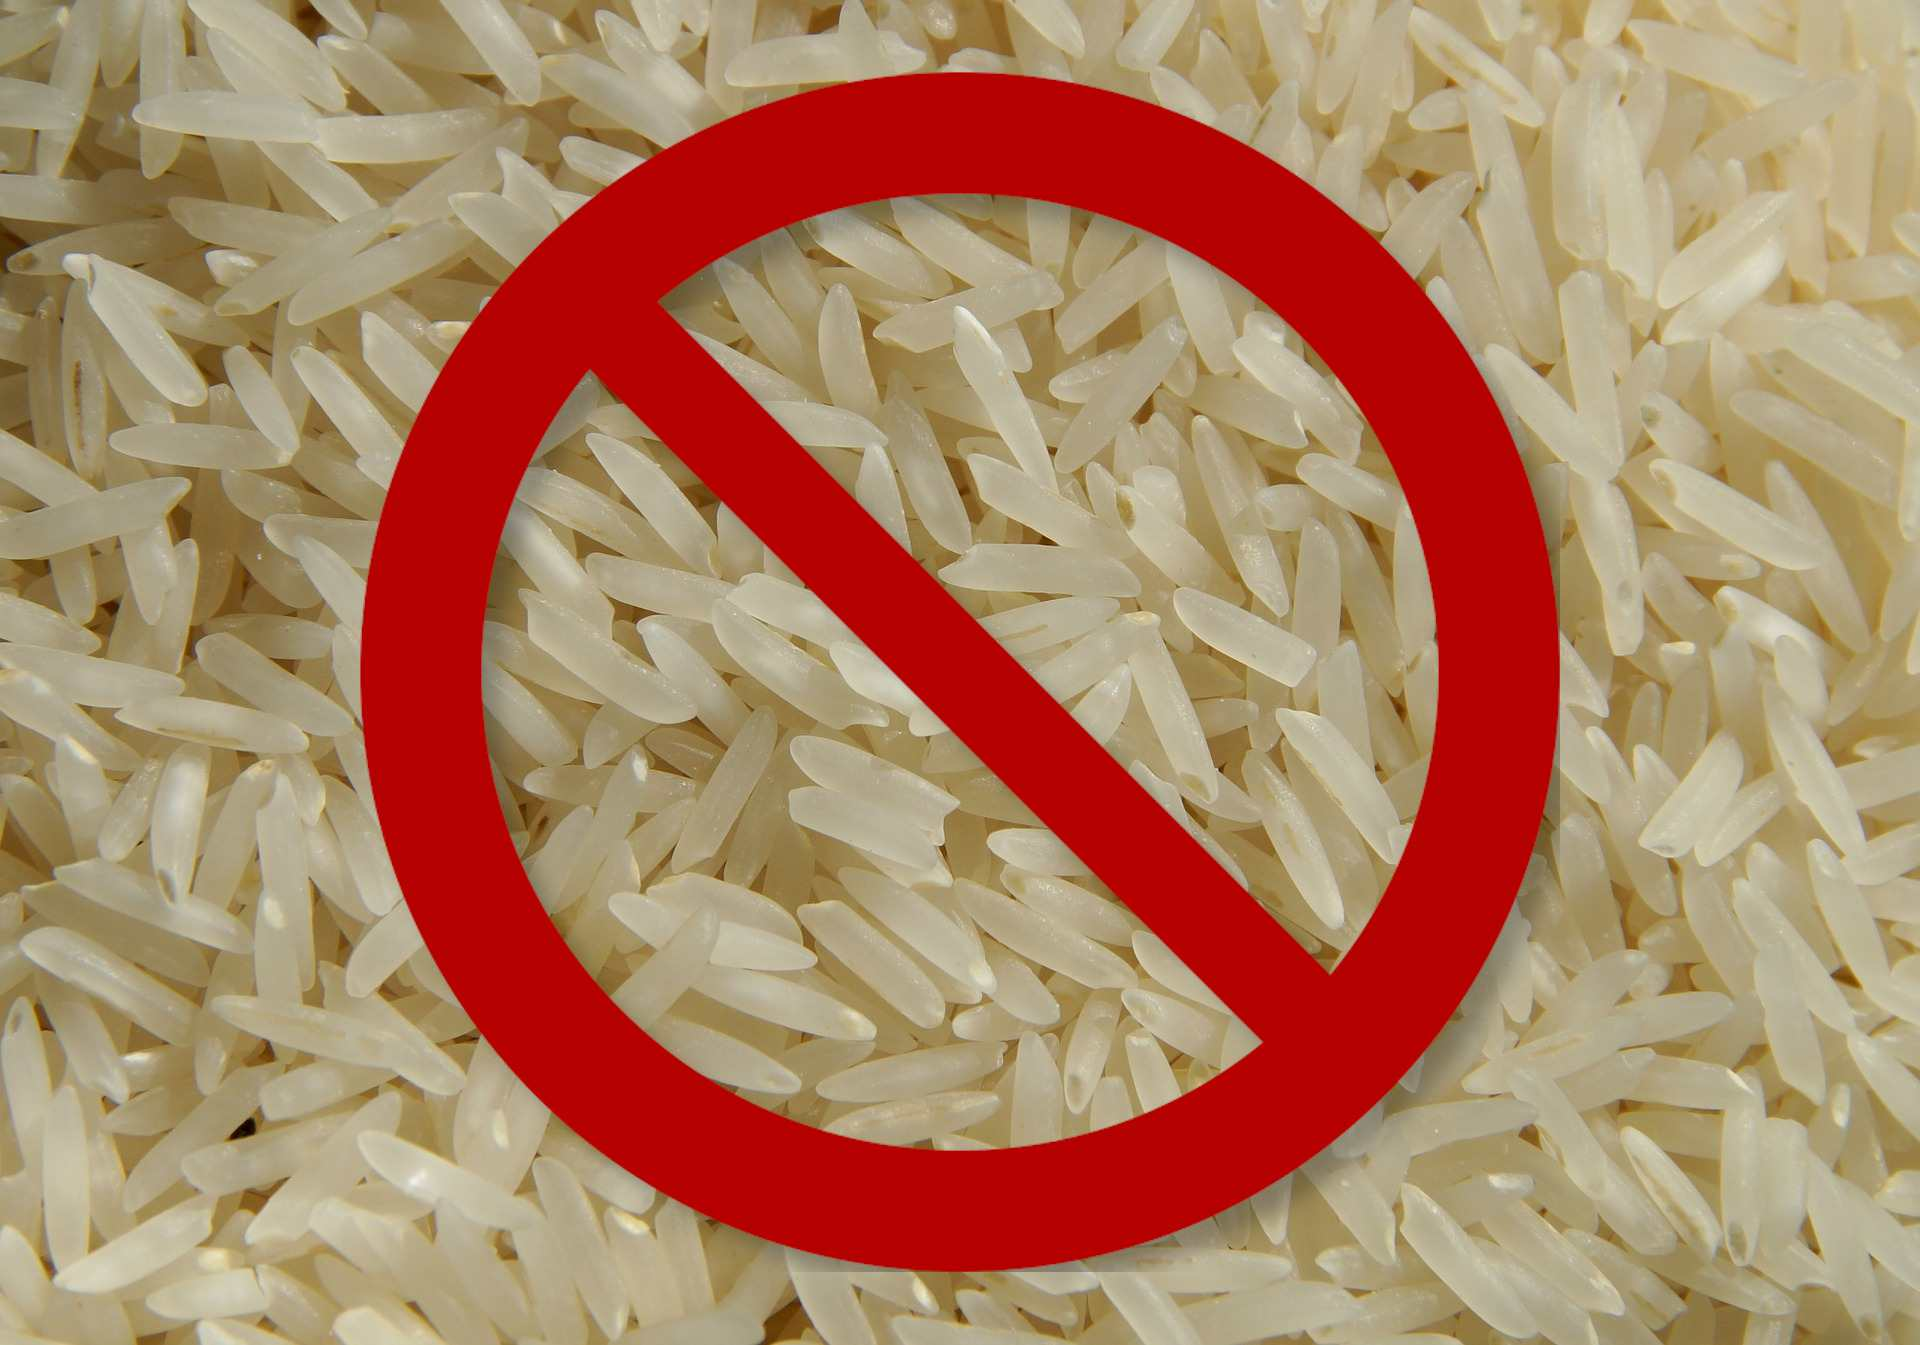 Don't use rice